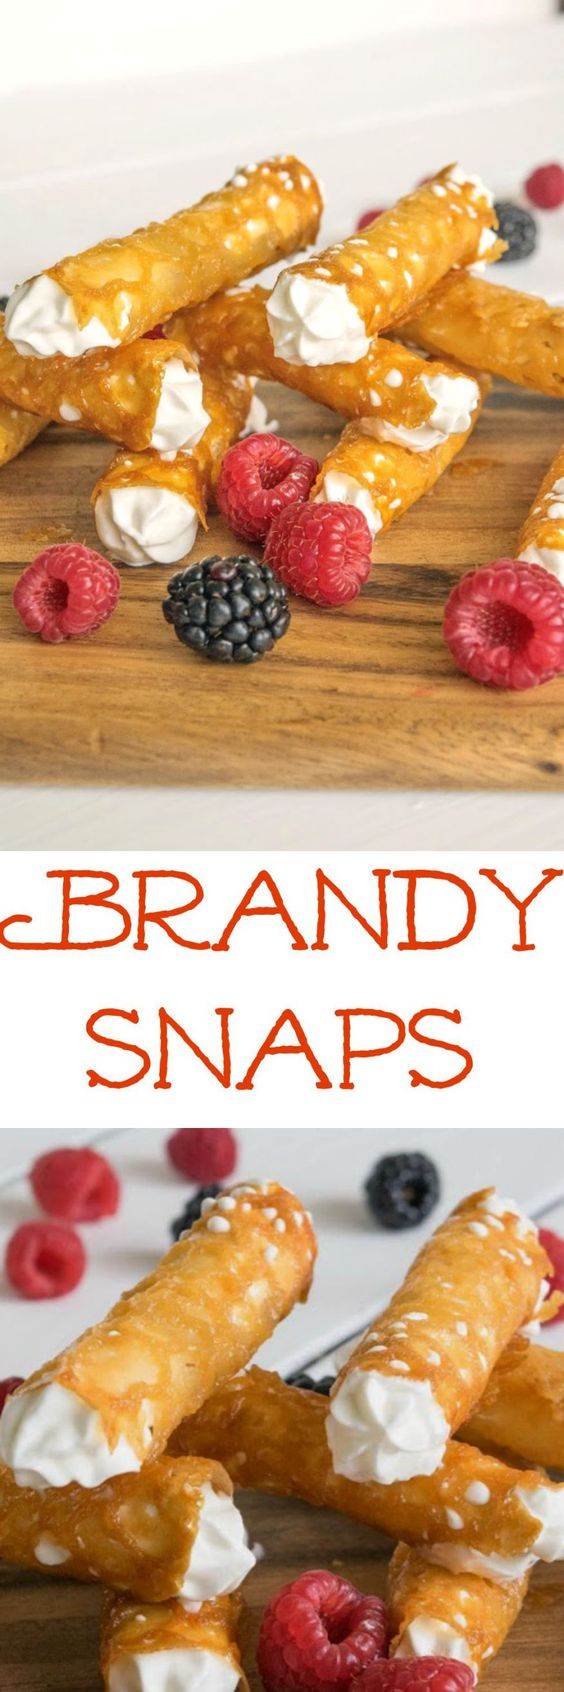 Brandy snaps, a popular dessert in the UK. Crispy golden lacy tubes filled with brandy whipped cream. A British holiday tradition & the brandy is optional.